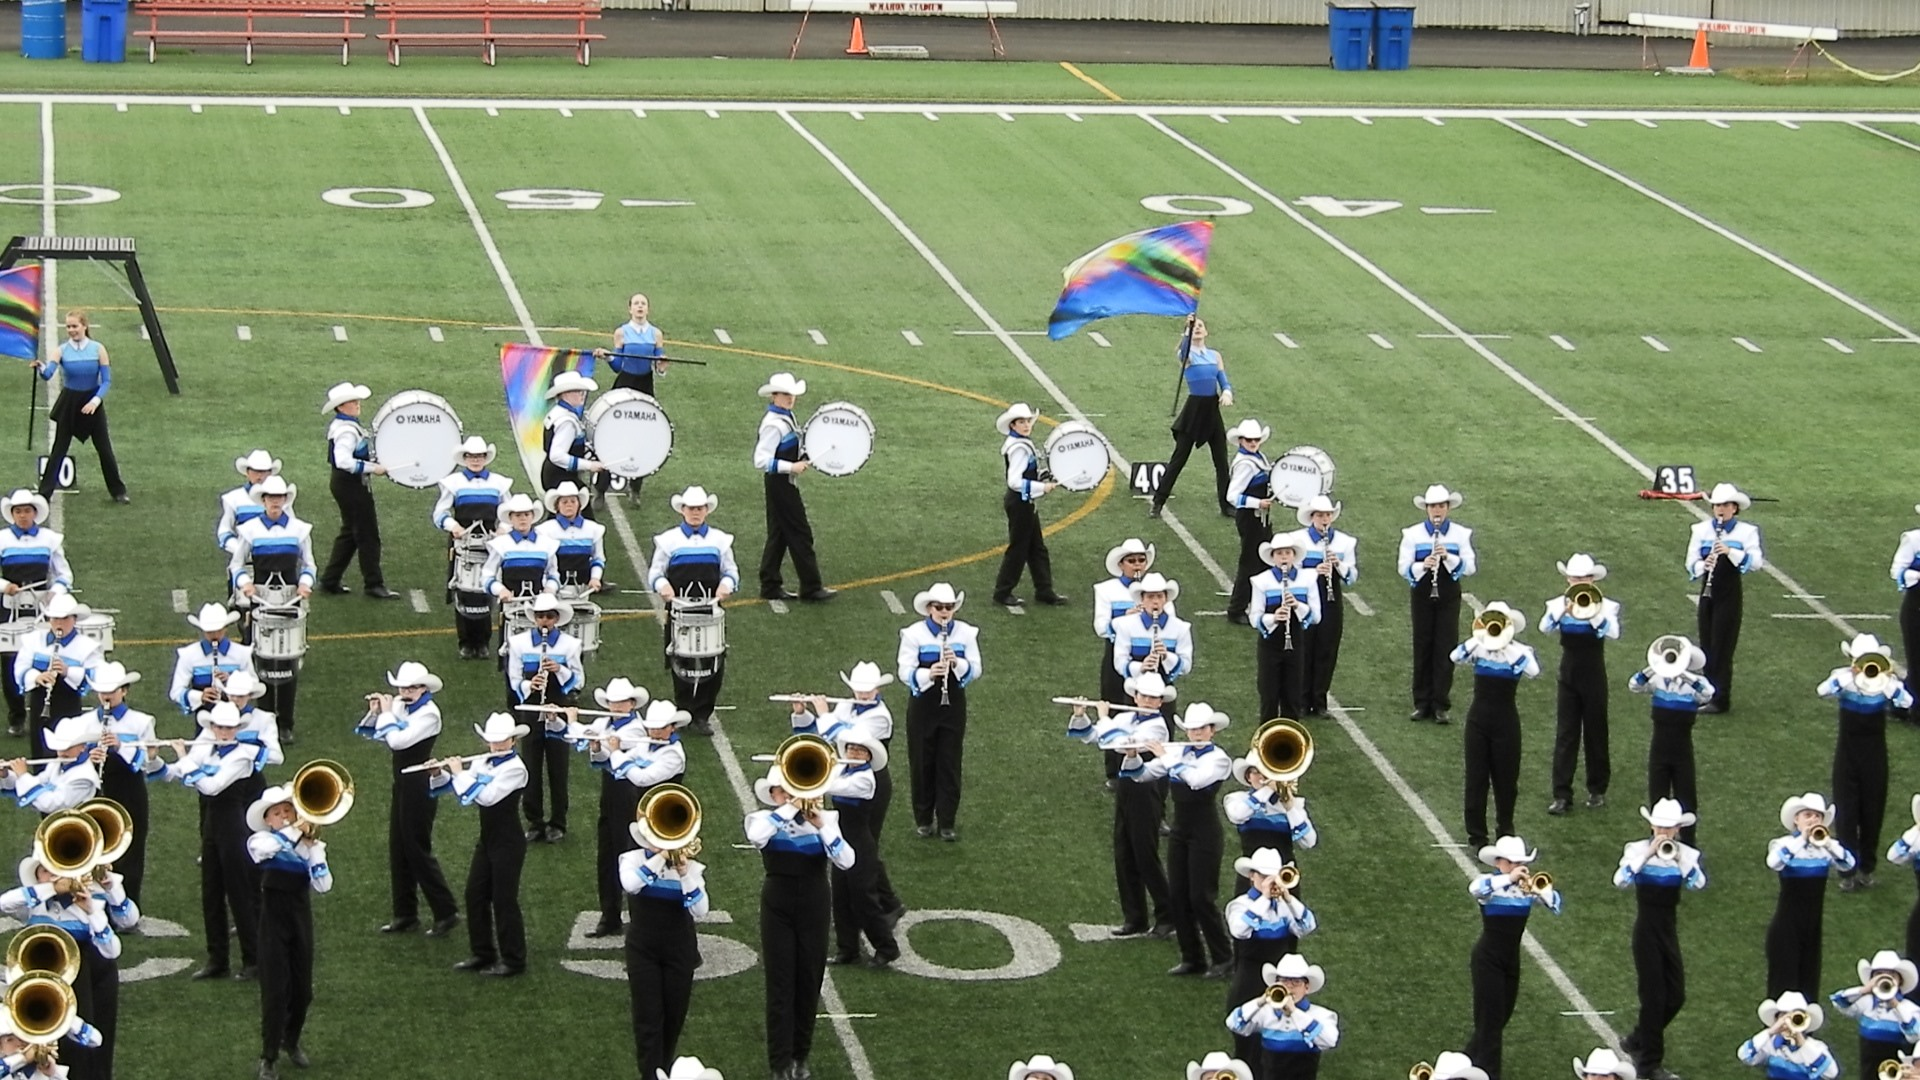 What is a field show?